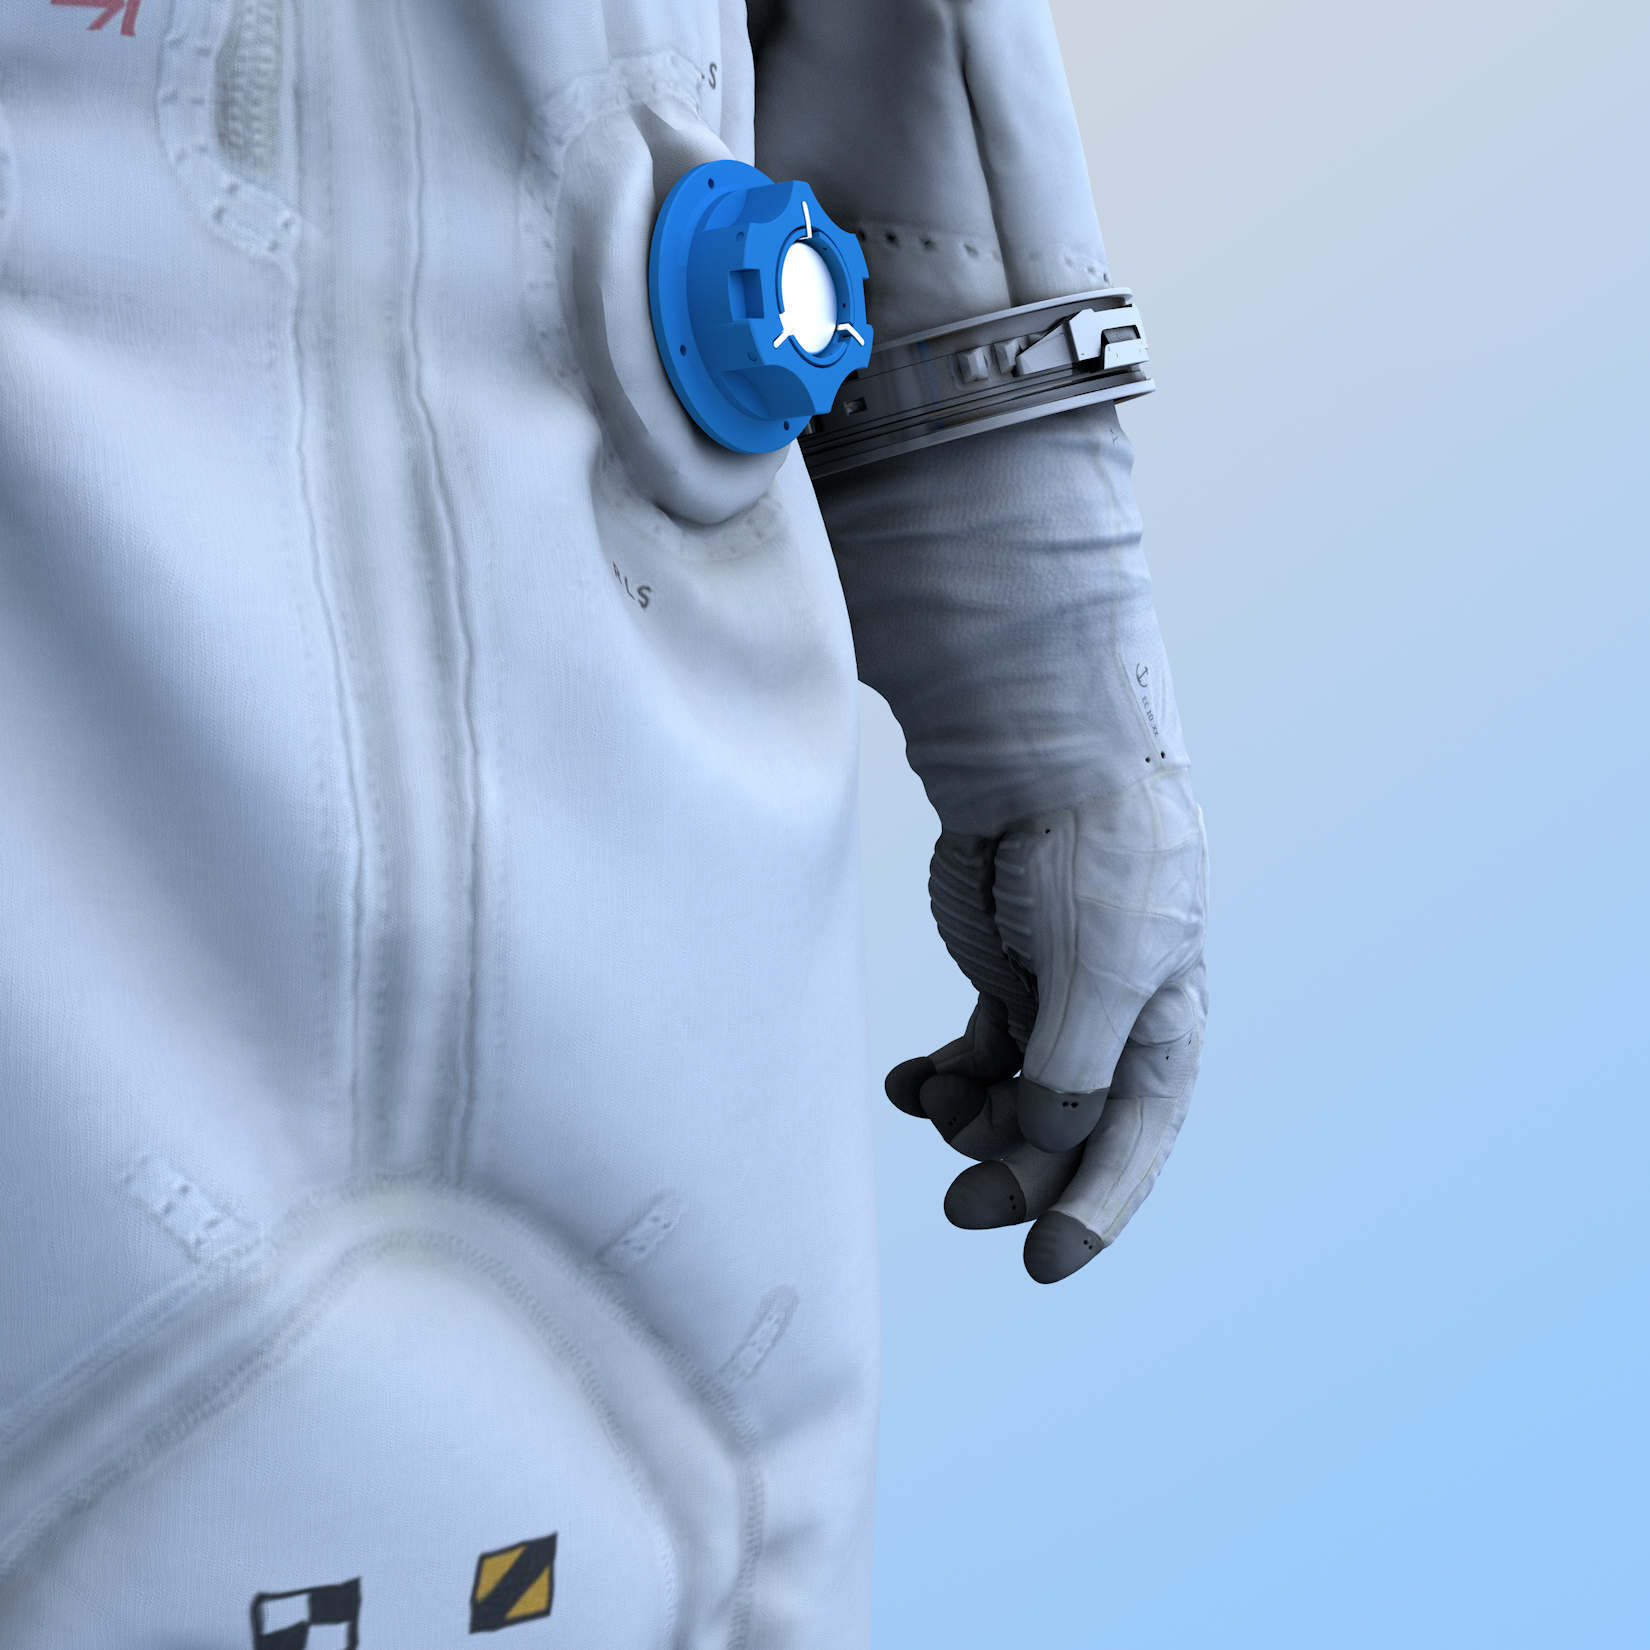 Astronaut_Hand